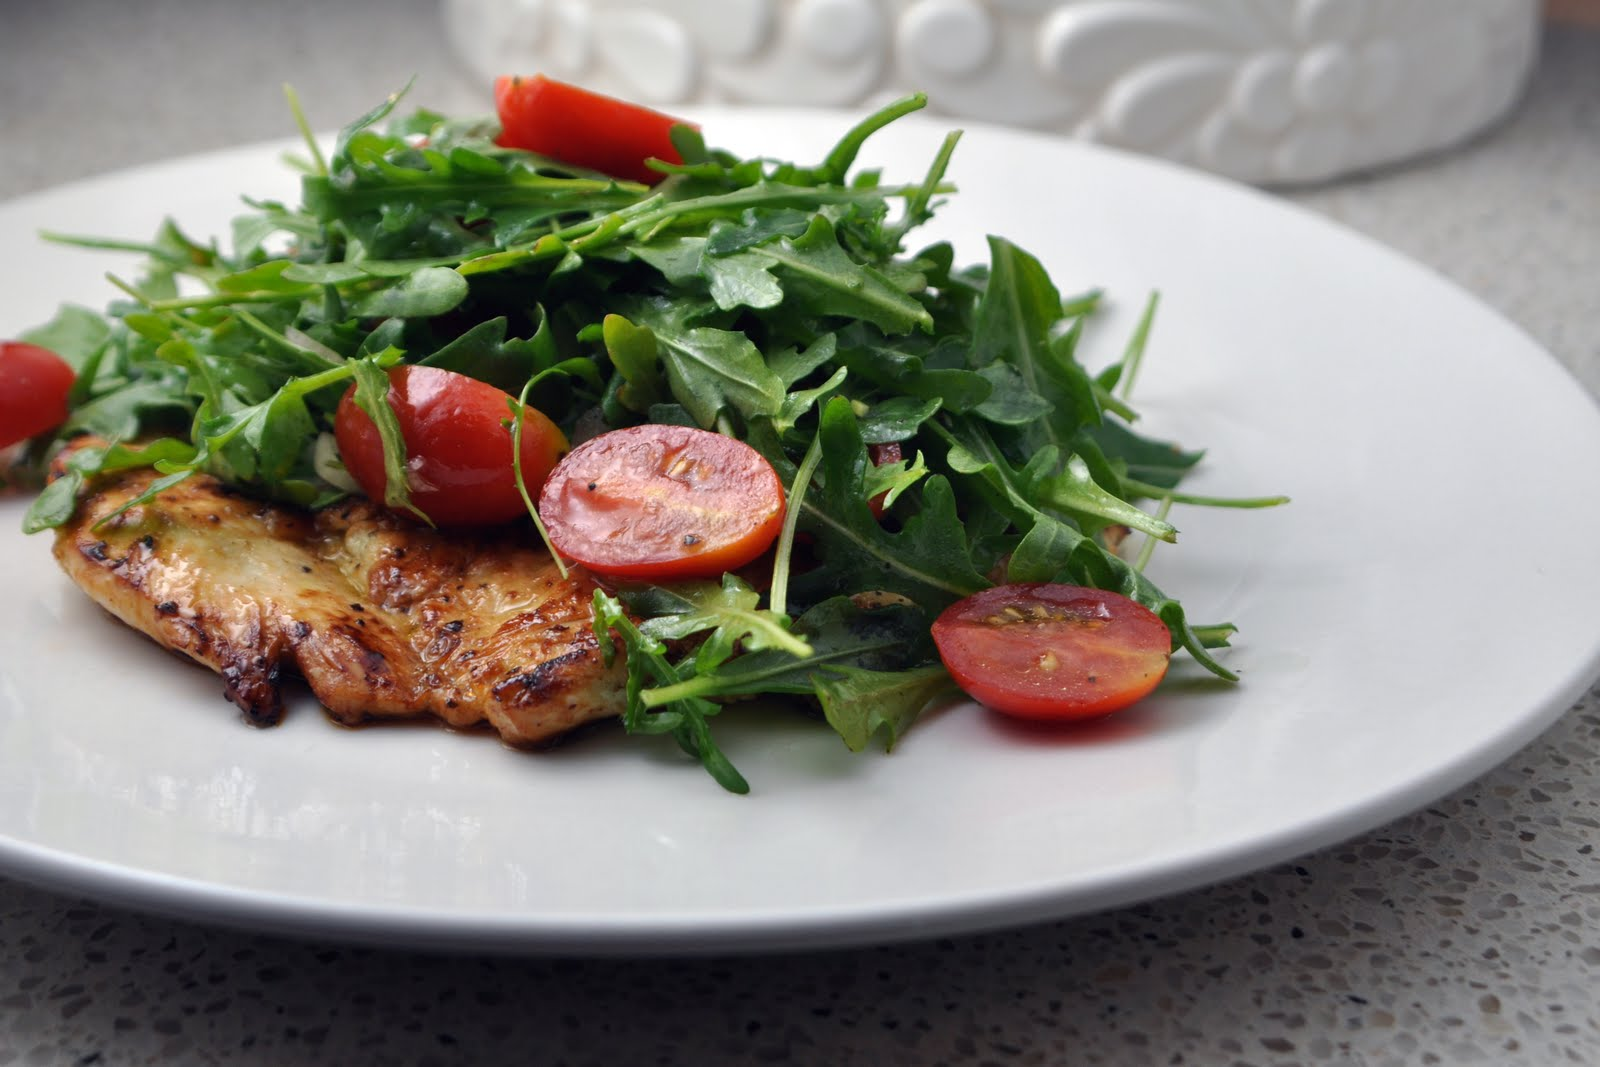 Impeccable Taste Chicken Paillard With Arugula Tomato Salad